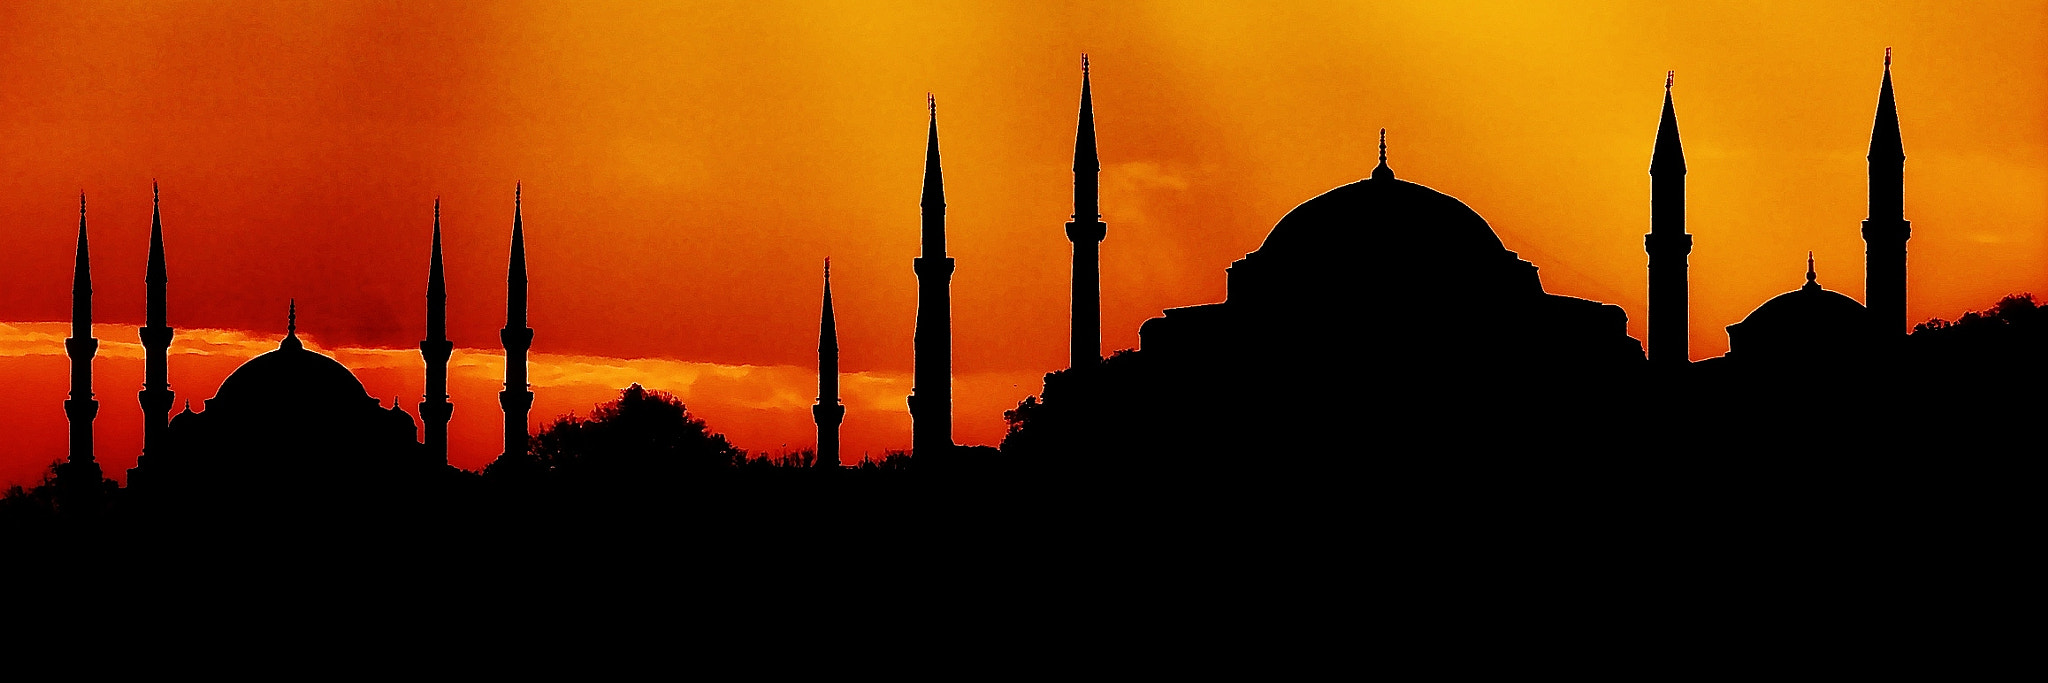 Photograph İstanbul by Adem Meleke on 500px